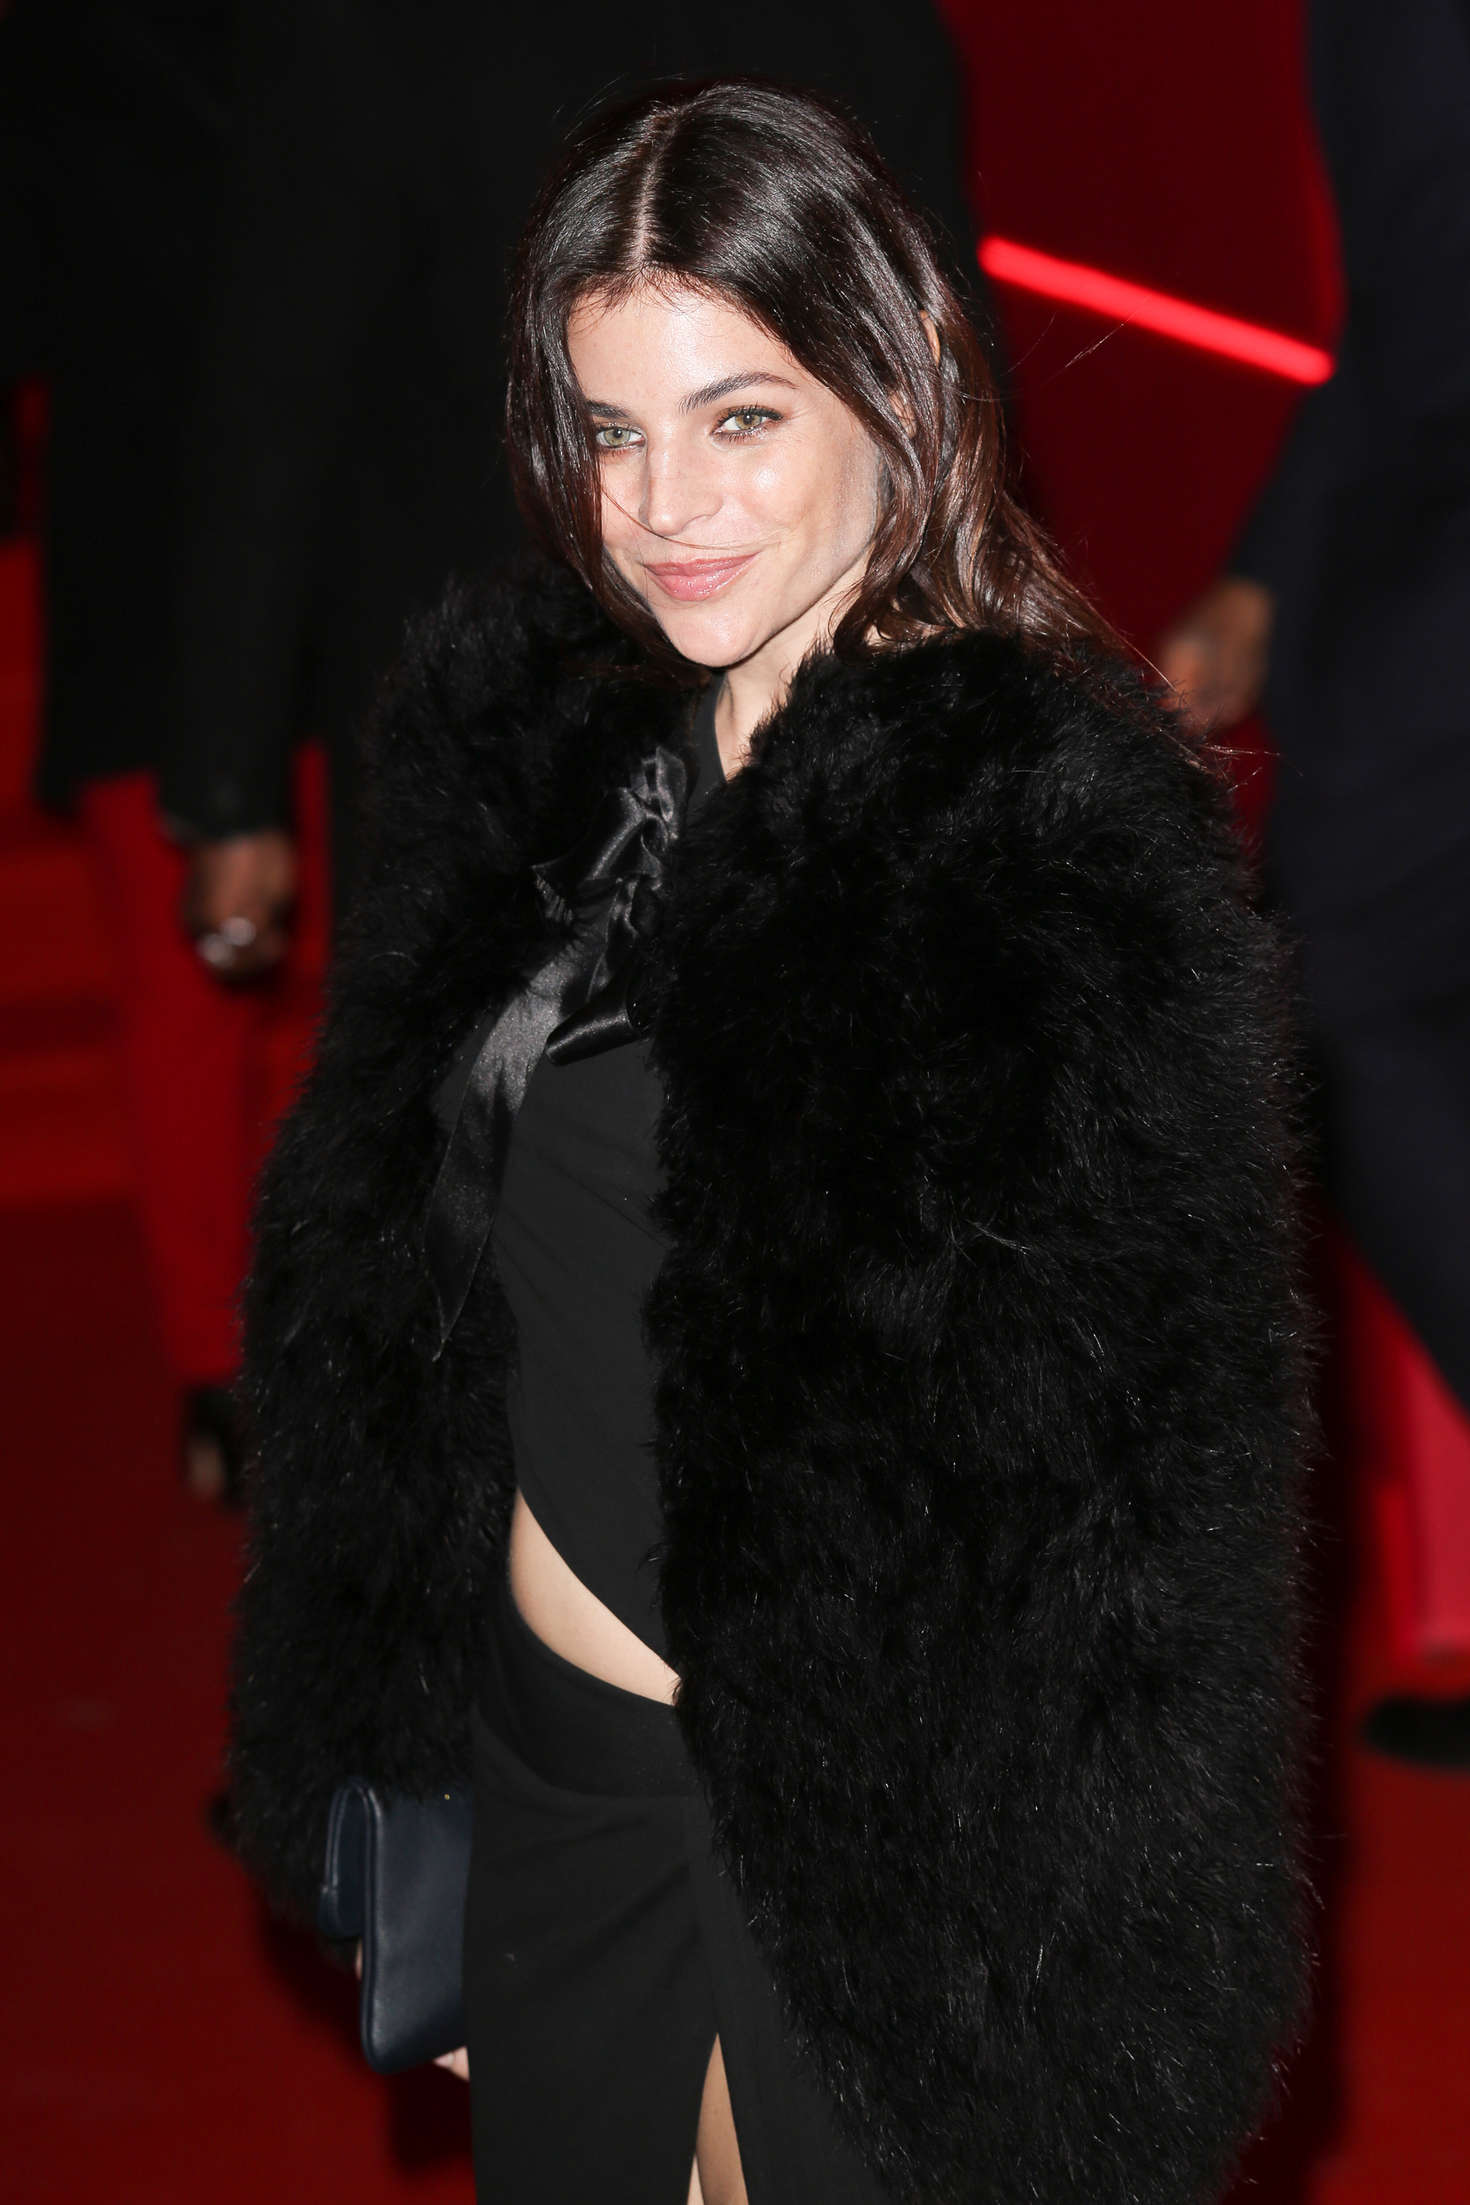 Julia Restoin Roitfeld Attends at LOreal Red Obsession Party in Paris